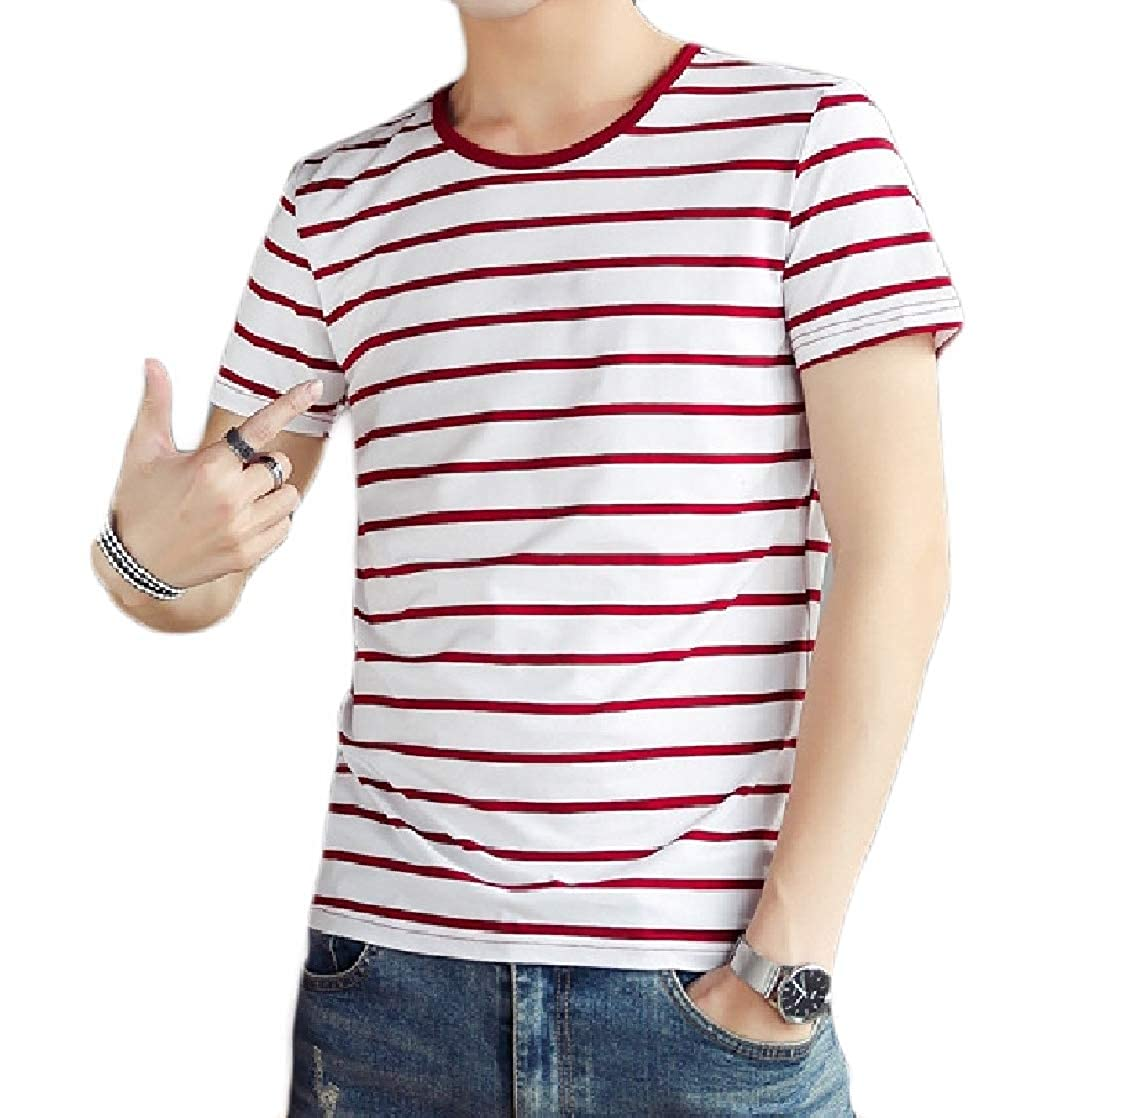 Fieer Mens Short-Sleeve Striped Plus Size Modal Cotton Pullover Tshirt Top